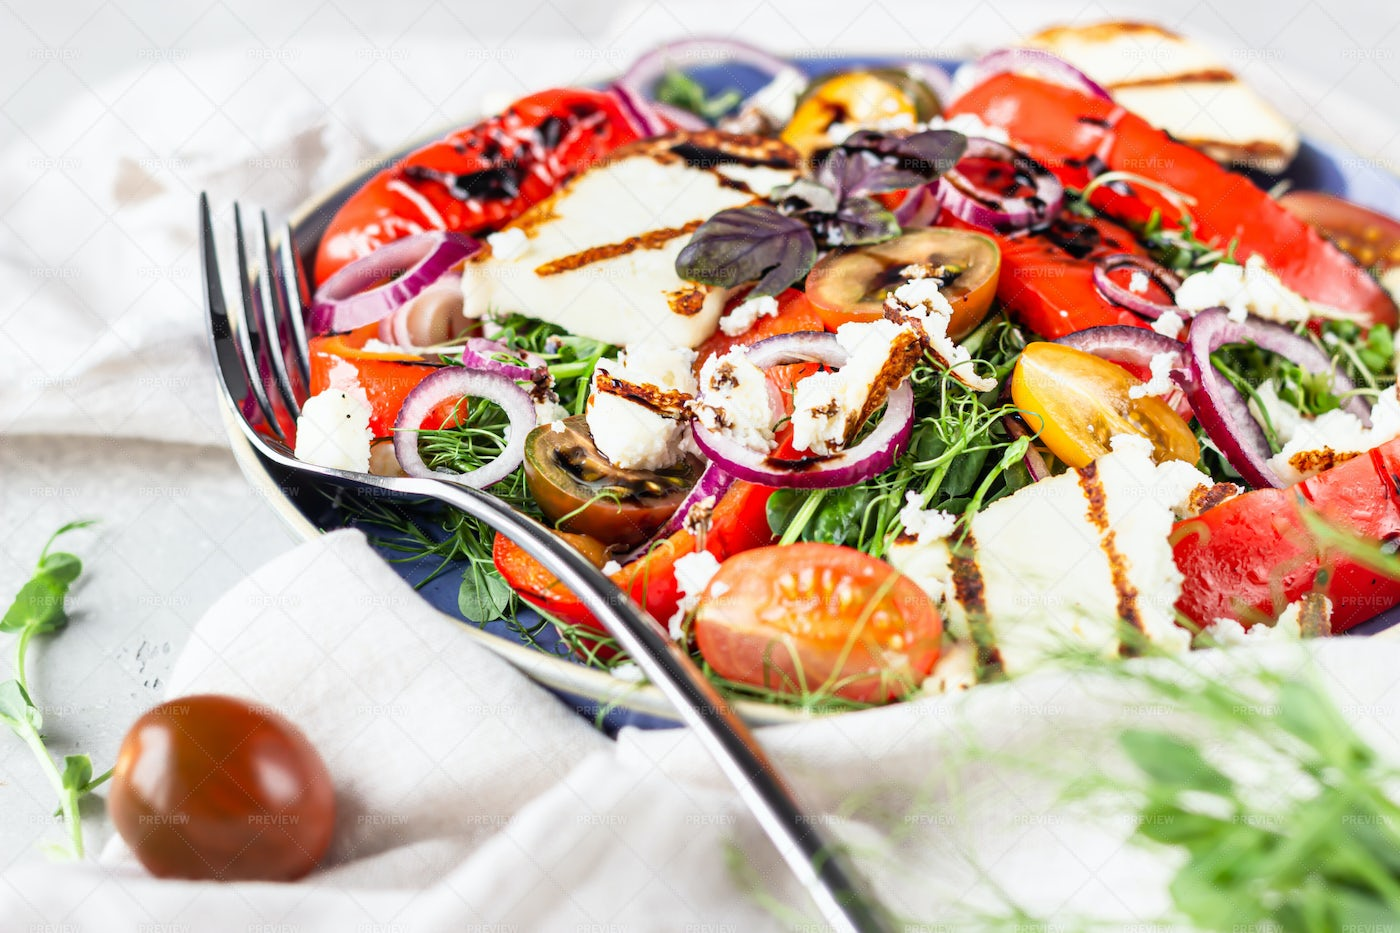 Salad With Grilled Cheese: Stock Photos